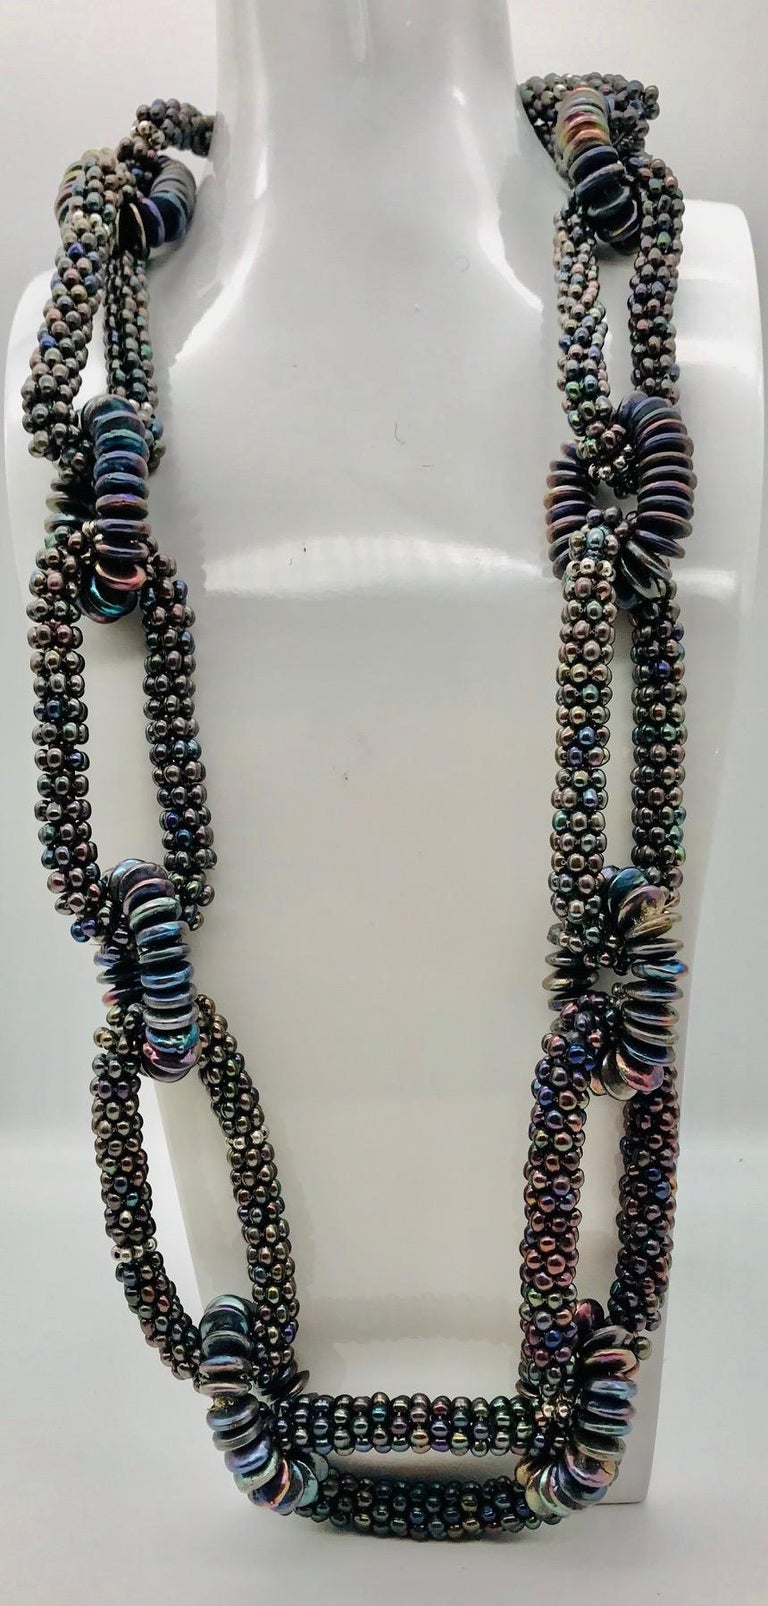 SYLVIA GOTTWALD, Black  Pearl  Necklace, labor intensive Statement ,Eco -luxe,   For Sale 2